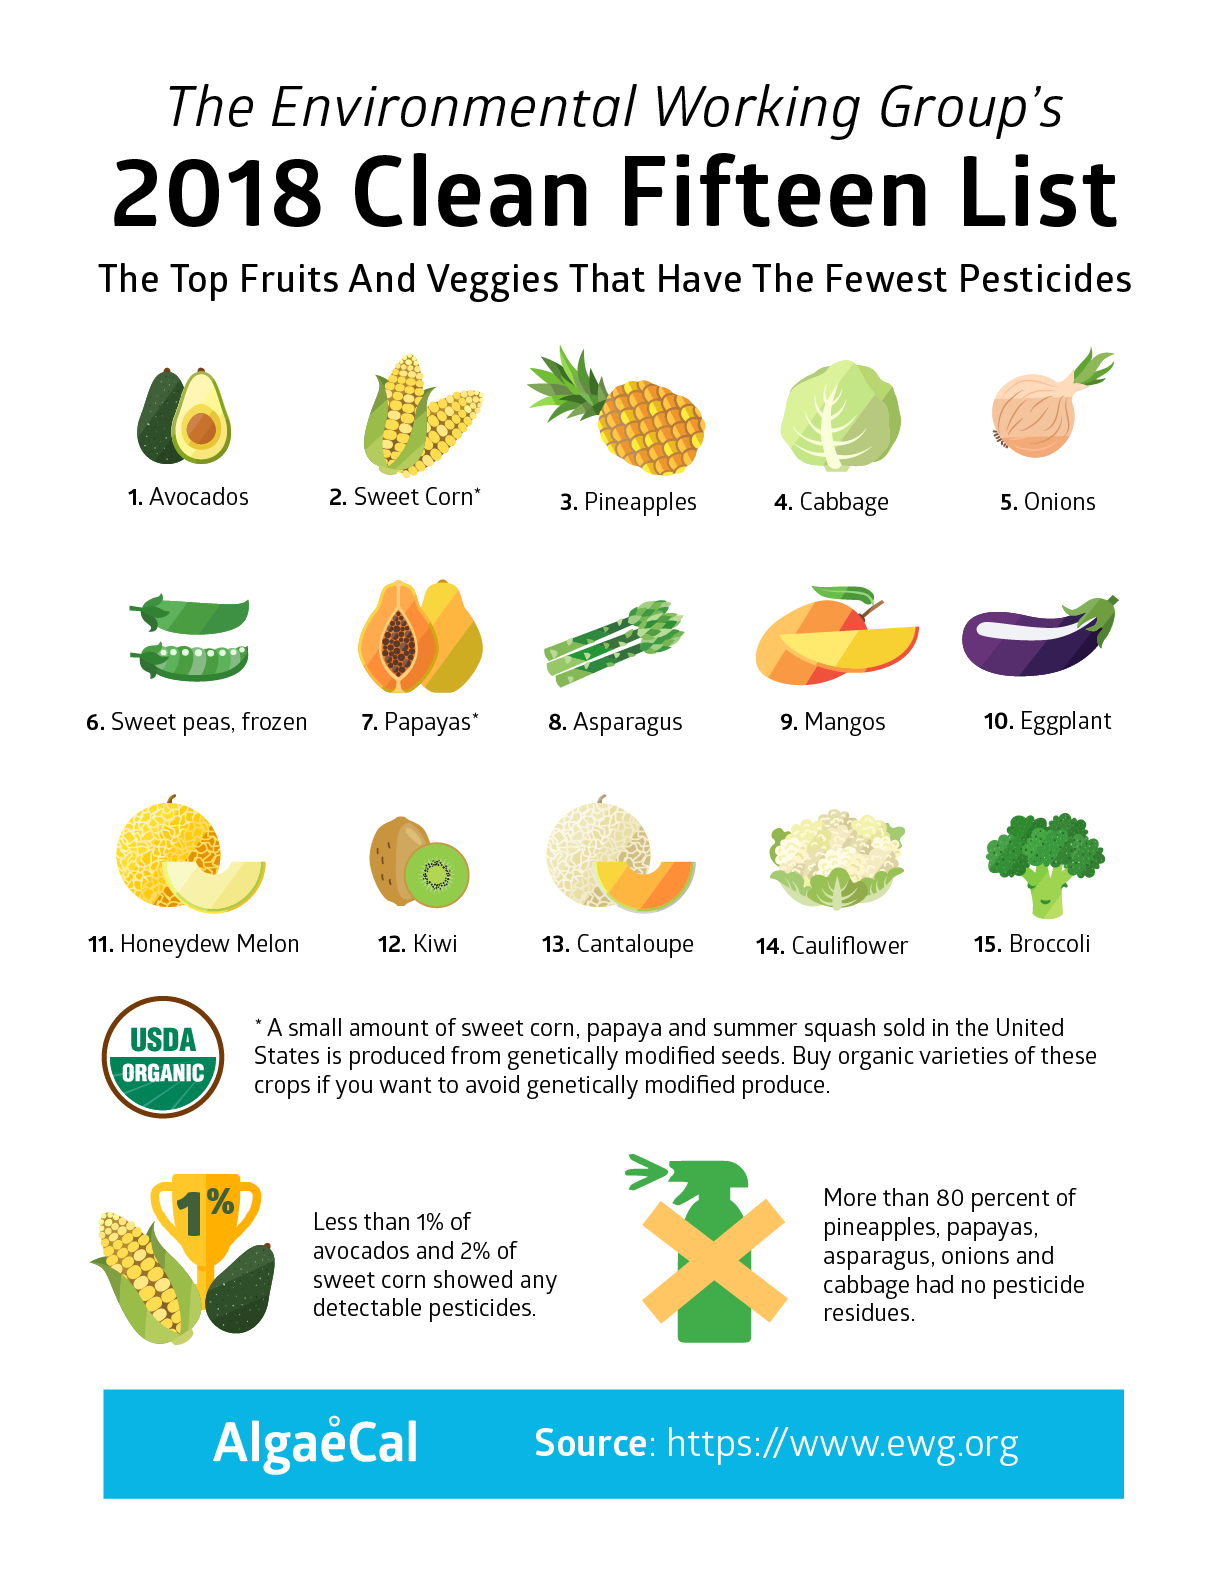 clean fifteen; organic